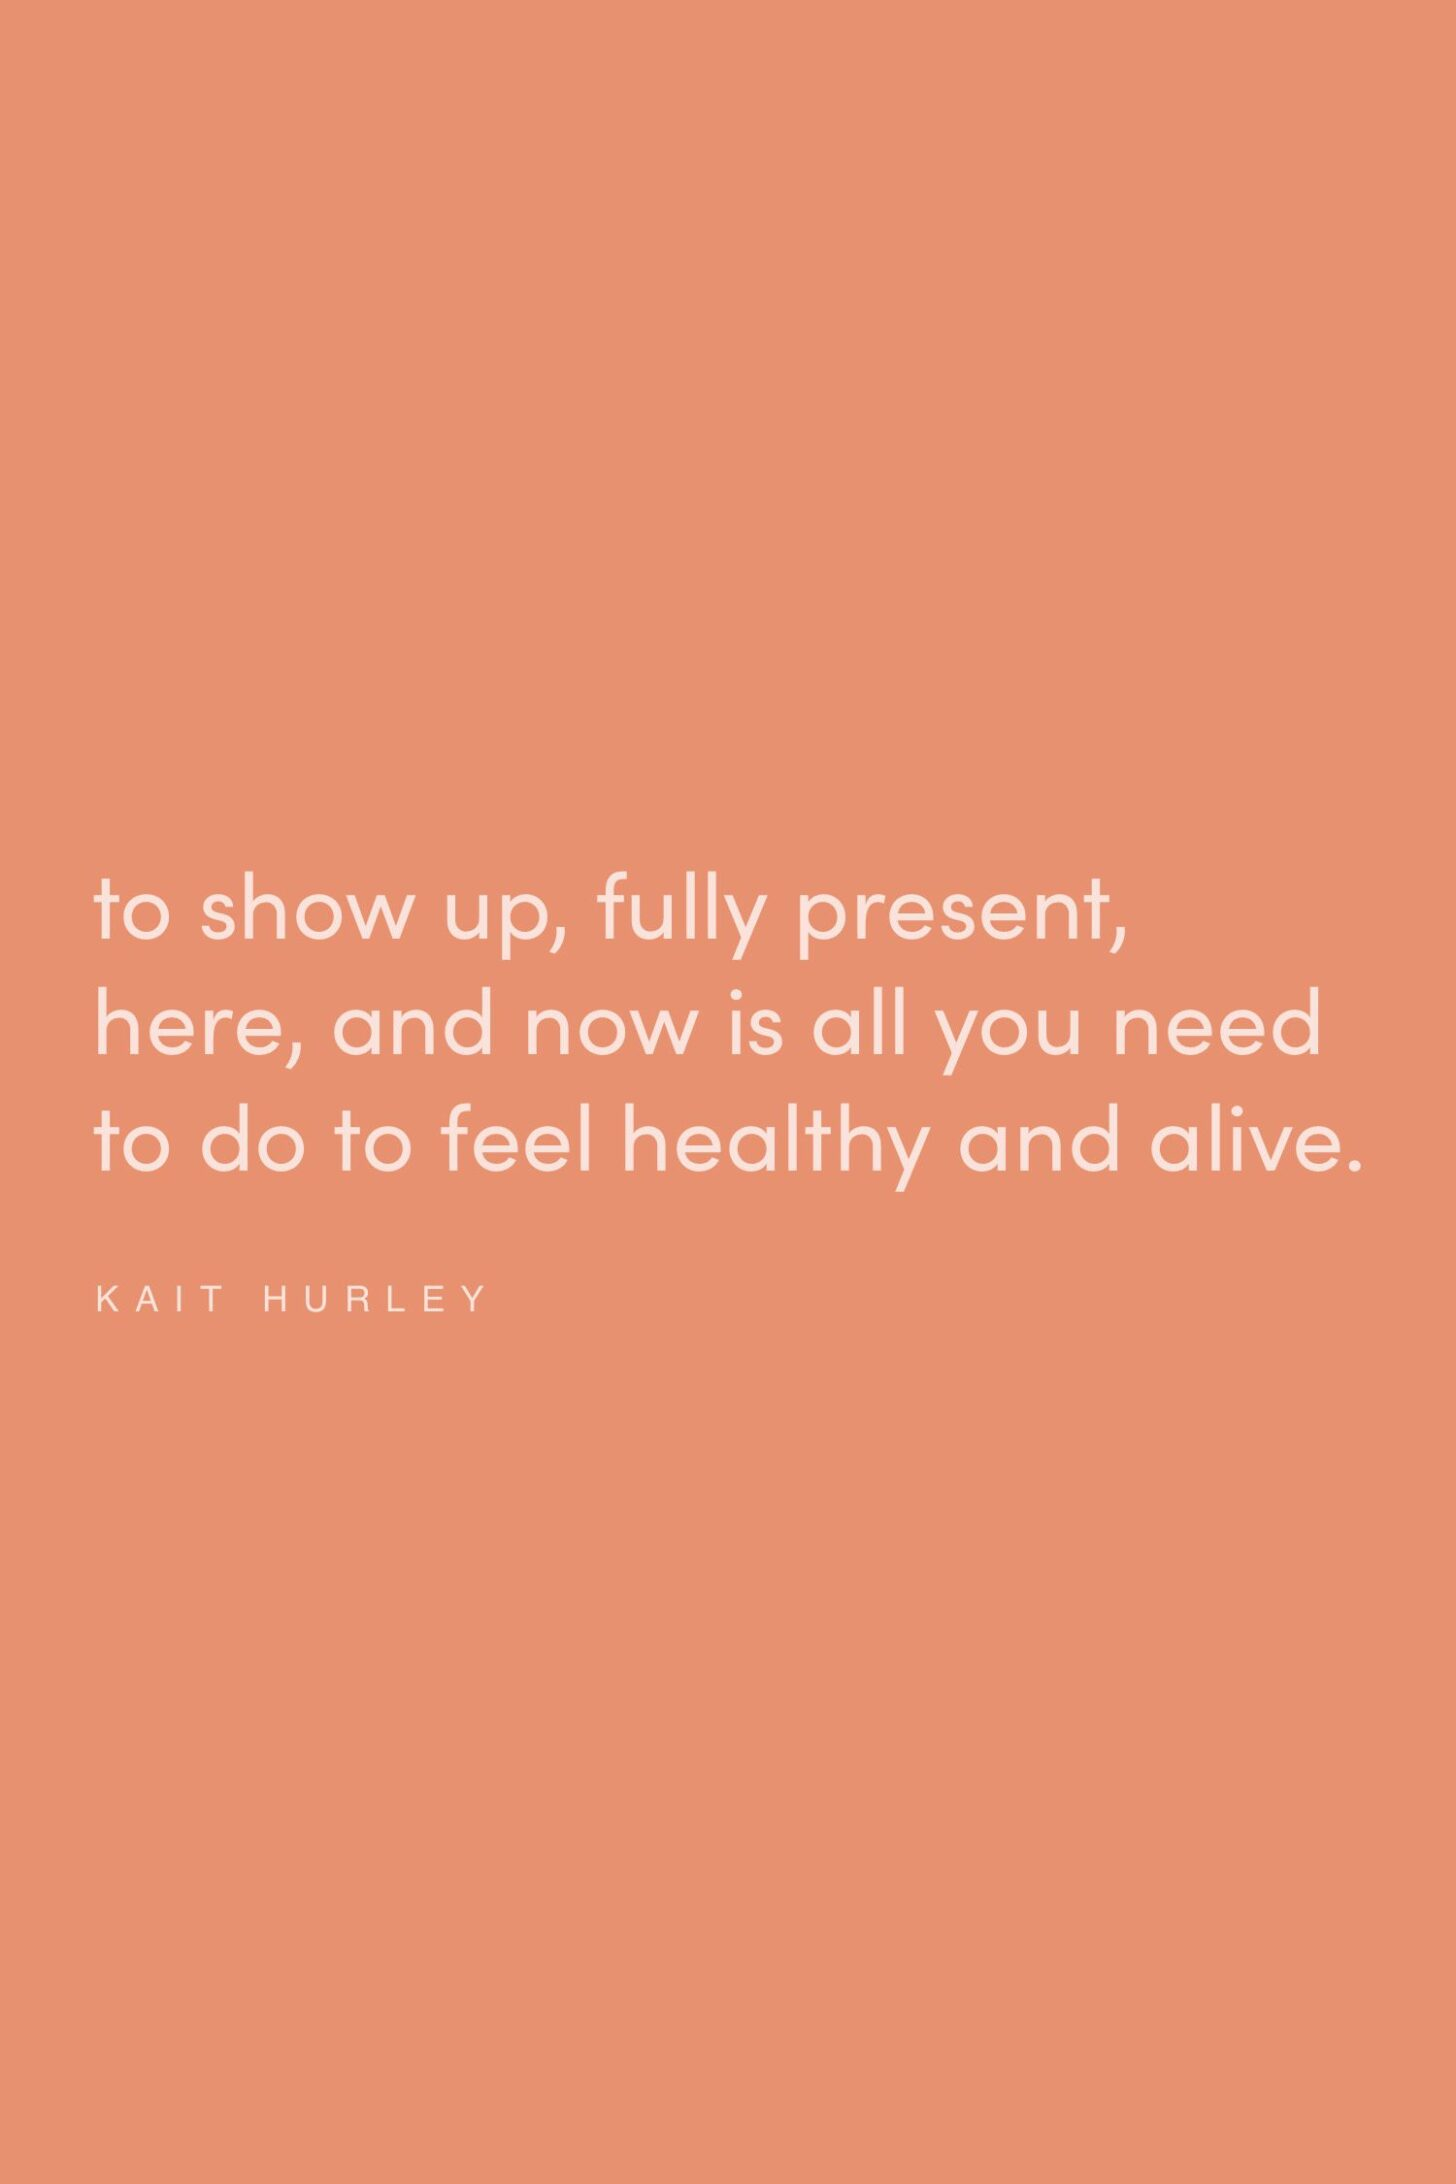 Quote on being healthy by Kait Hurley on the Feel Good Effect Podcast #realfoodwholelife #feelgoodeffectpodcast #motivationalquote #positivityquote #inspirationalquote #selfcarequote #mindfulnessquote #awarenessquote #healthyquote